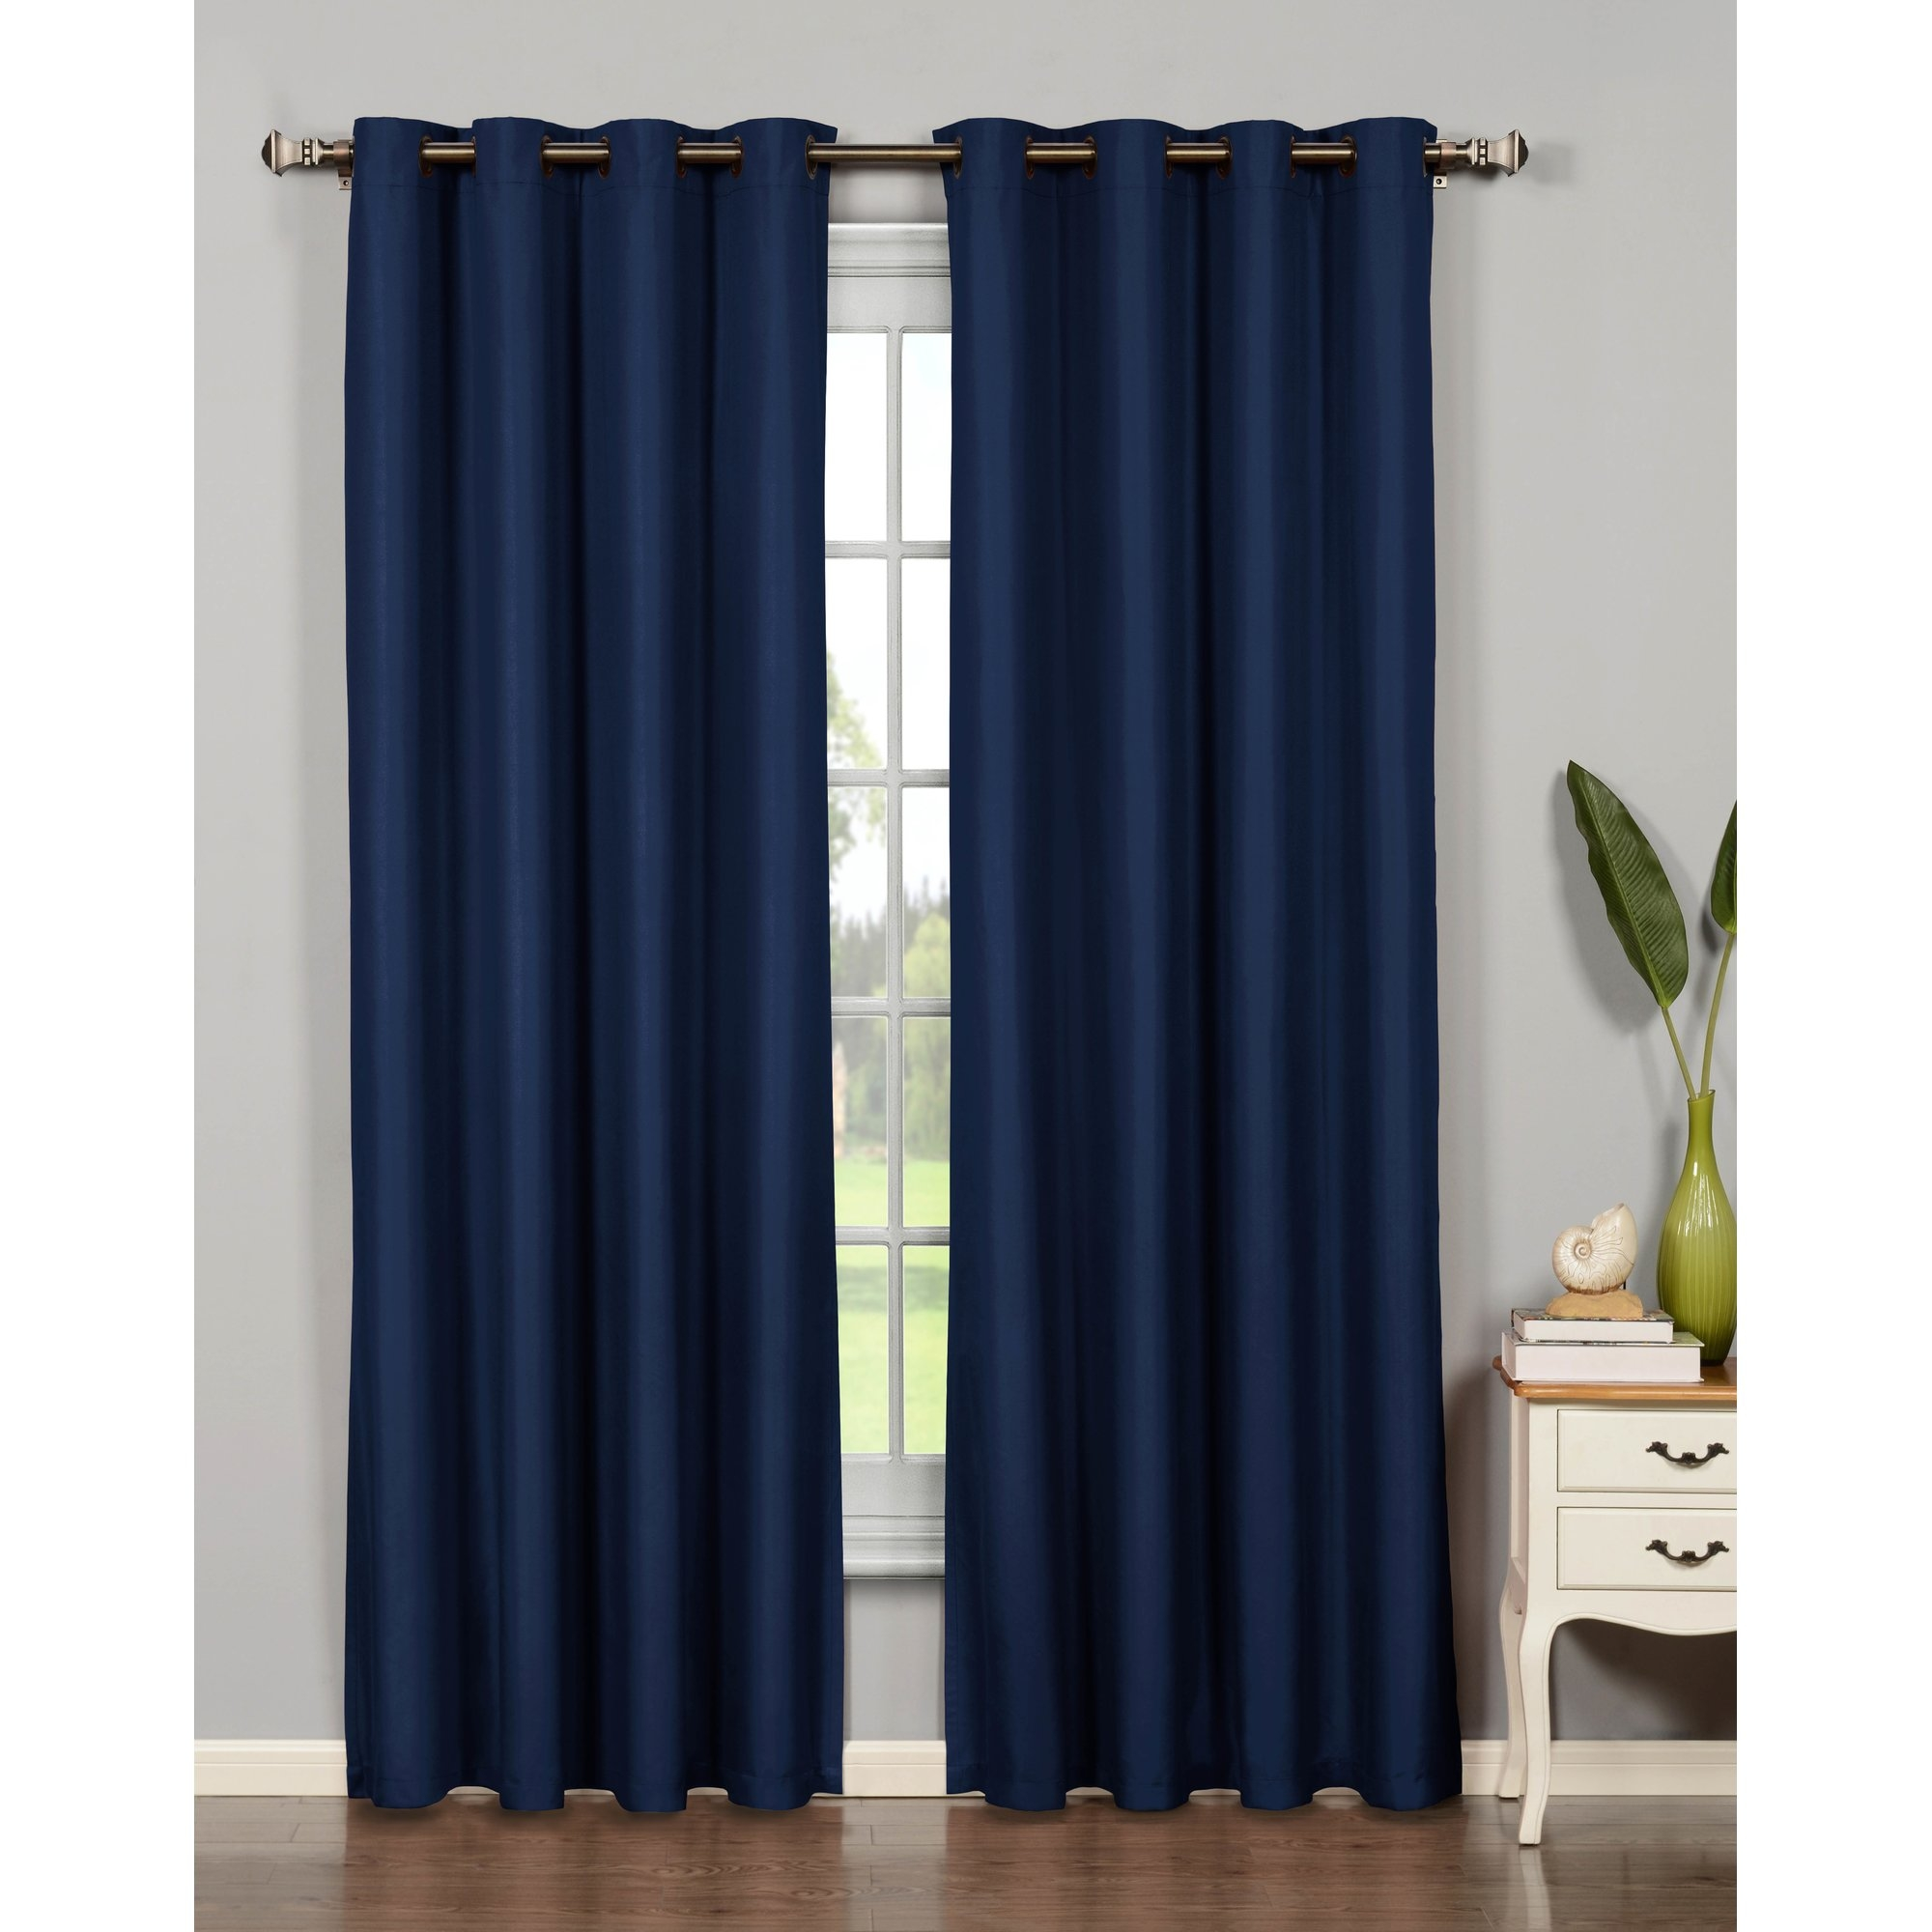 Bella Luna Emma Extra Wide Solid Room Darkening Thermal Grommet Pertaining To Extra Wide Thermal Curtains (Image 5 of 15)